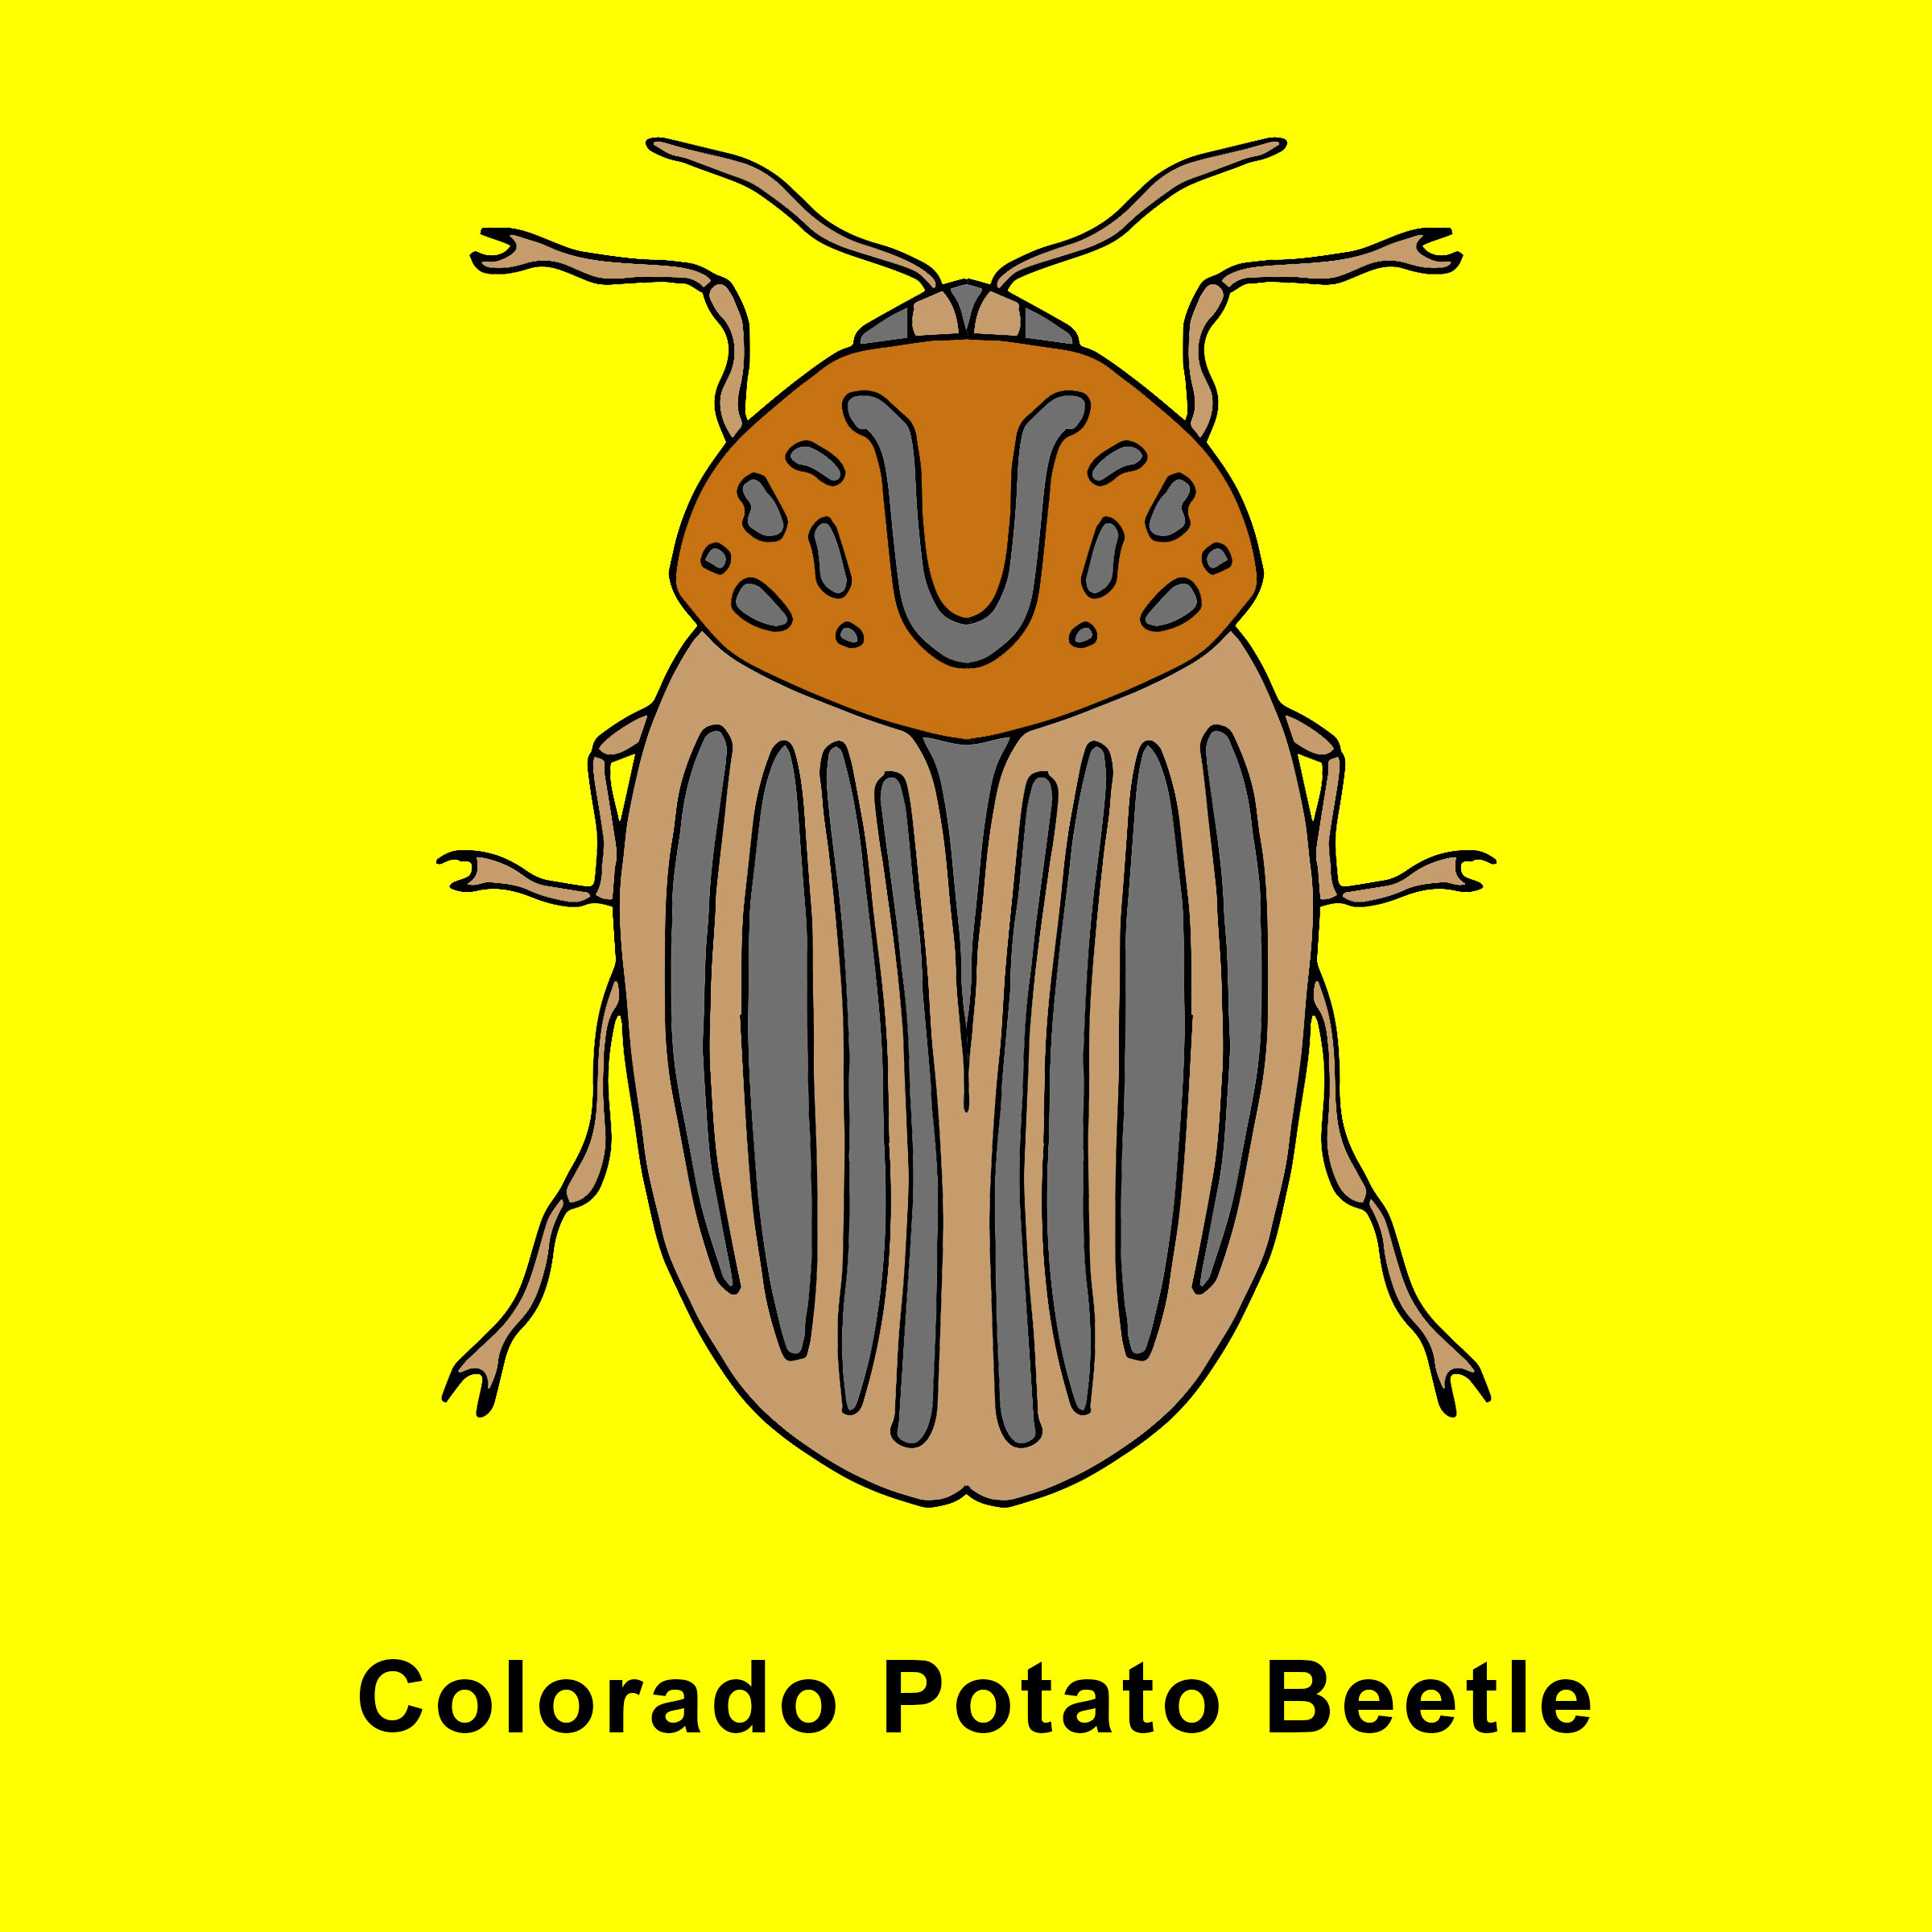 Colorado Potato Beetle Beetle.jpg